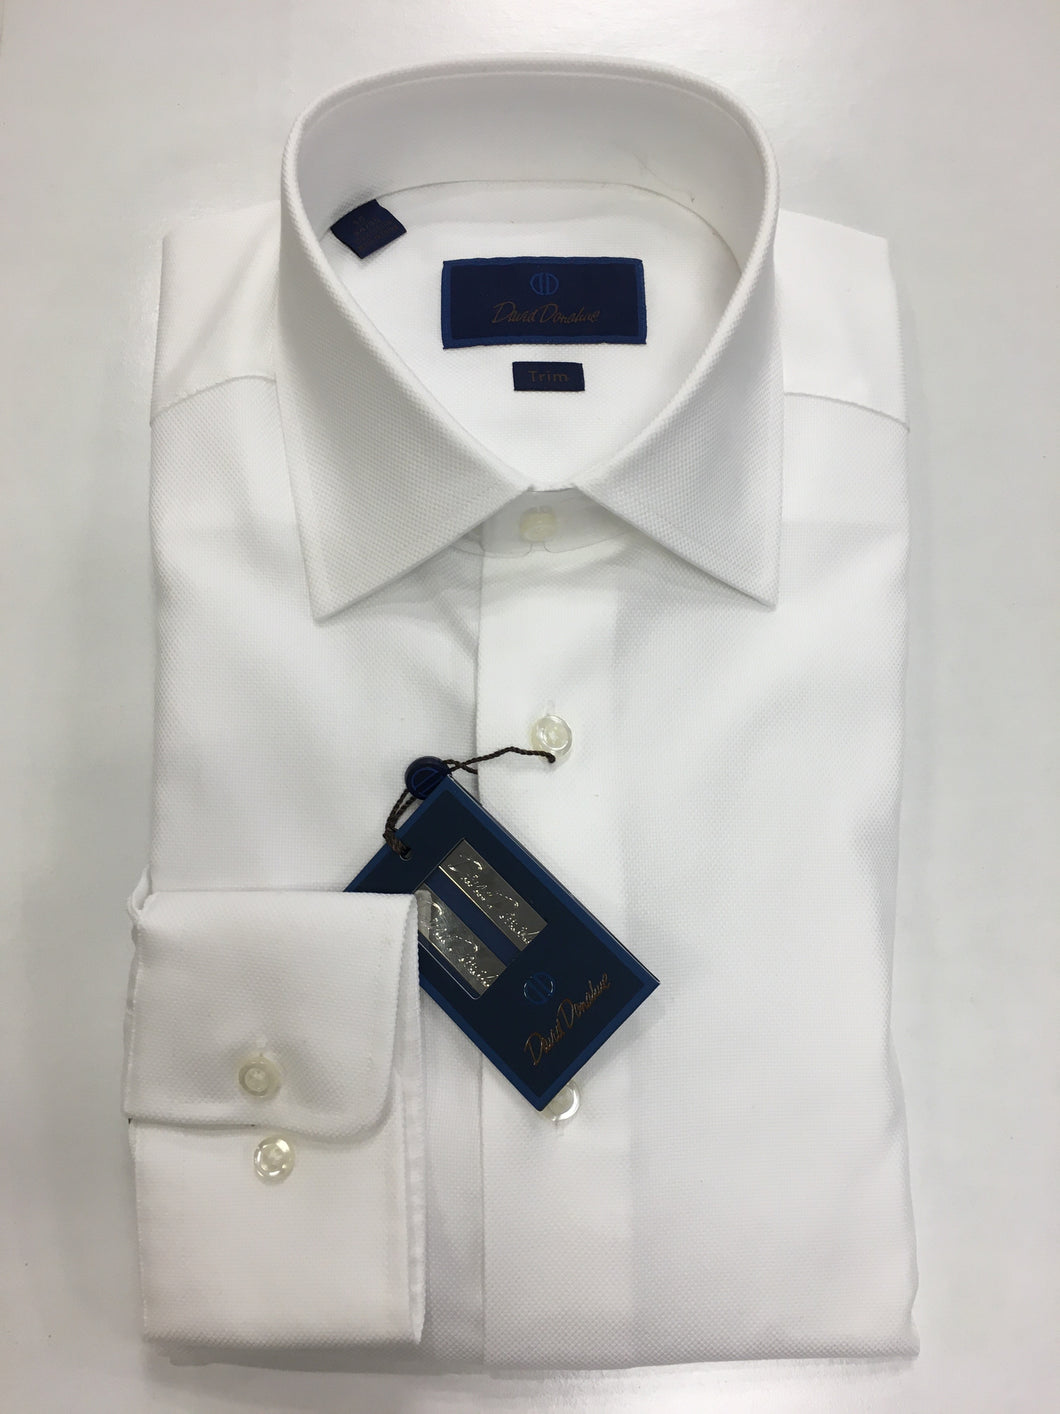 David Donahue White-Royal Oxford Dress Shirt Trim Fit